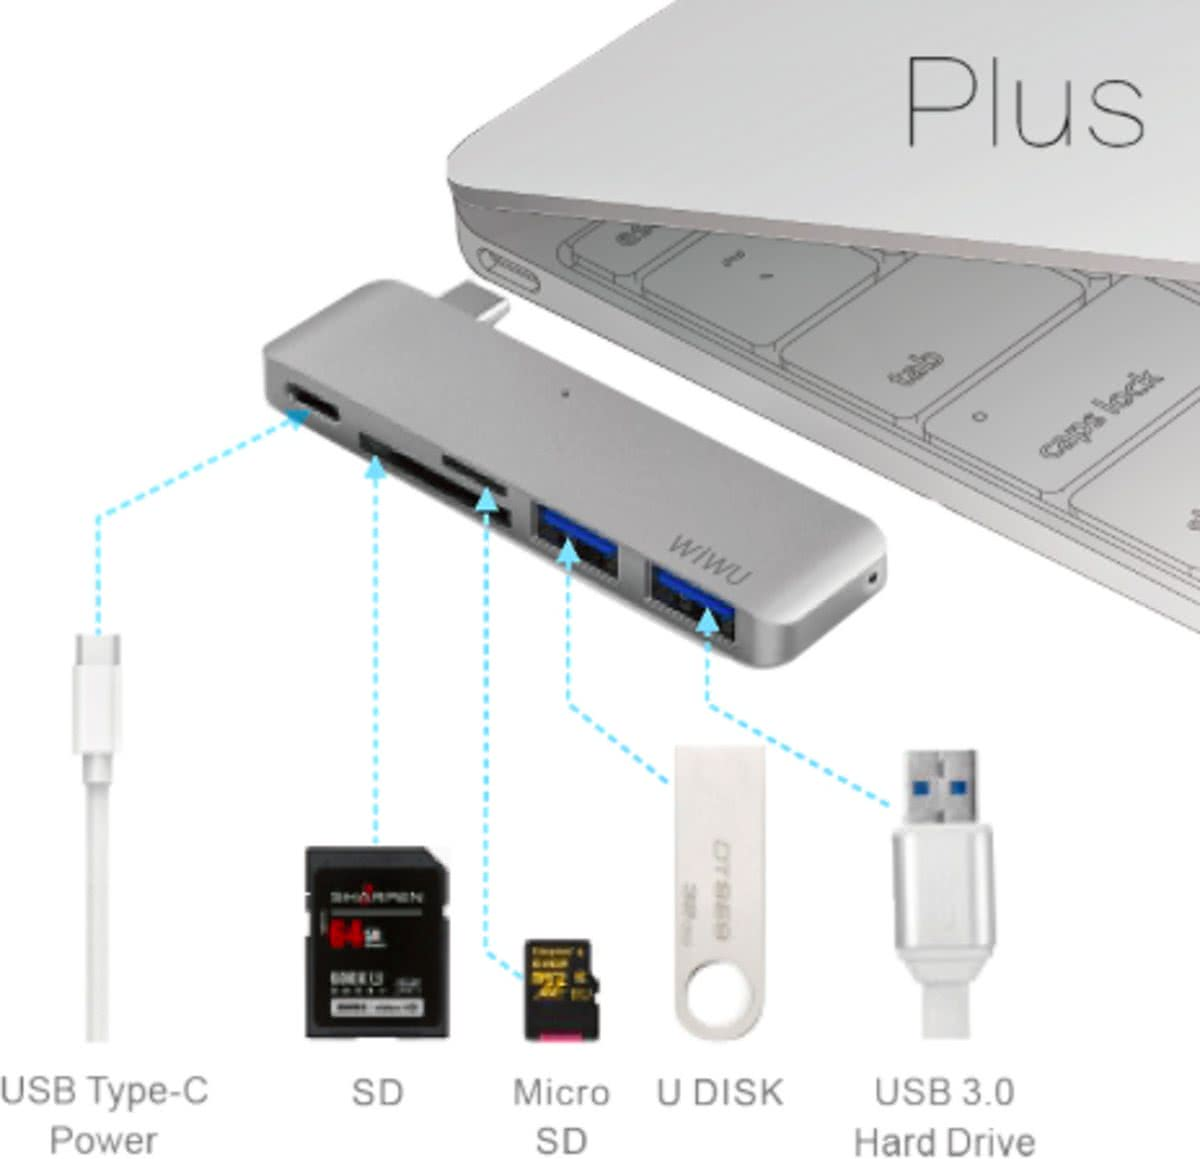 C1 Plus 5-in-1 Type C convertor ( 1x Type-C, 1x SD Card, 1x Mini SD Card, 2x USB 3.0) - Grijs